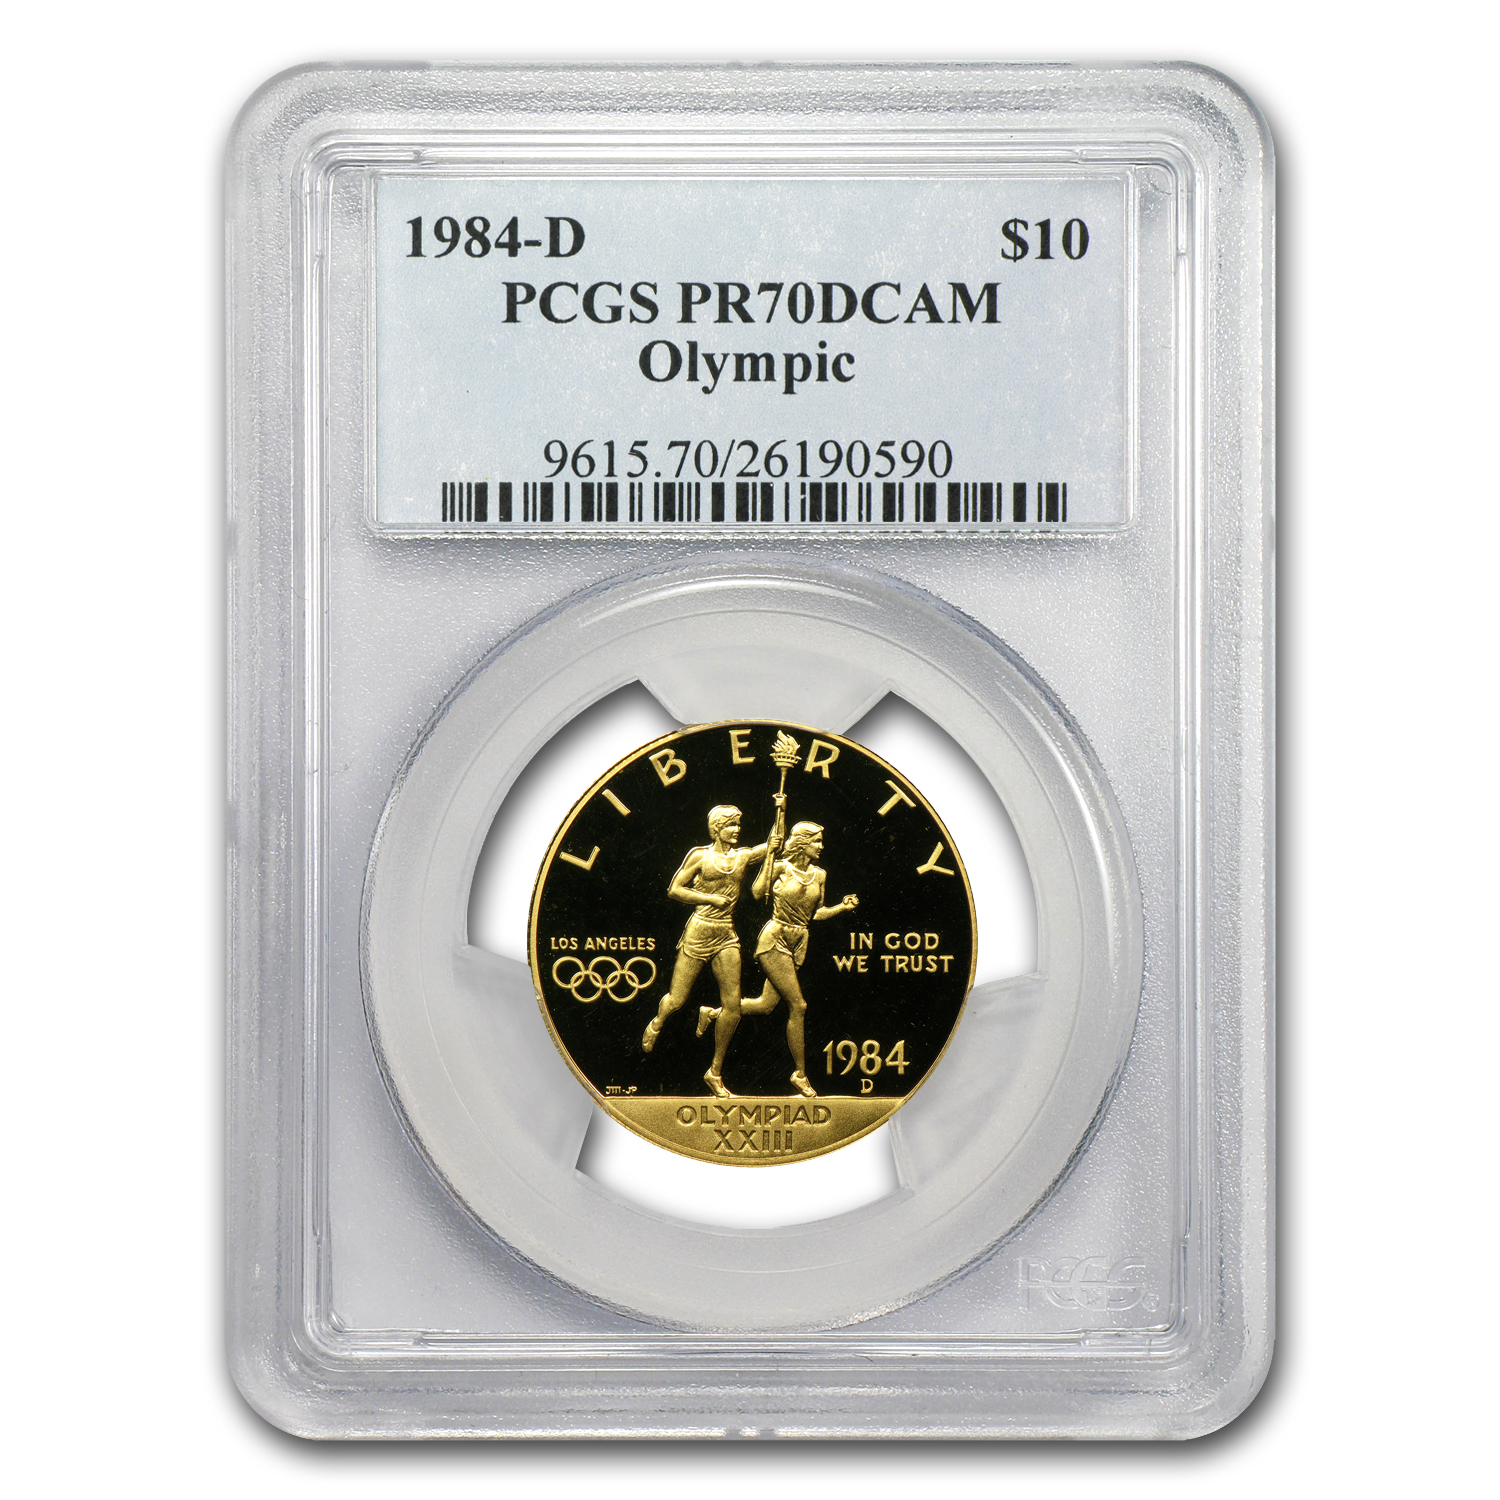 1984-D Gold $10 Commem Olympic PR-70 PCGS